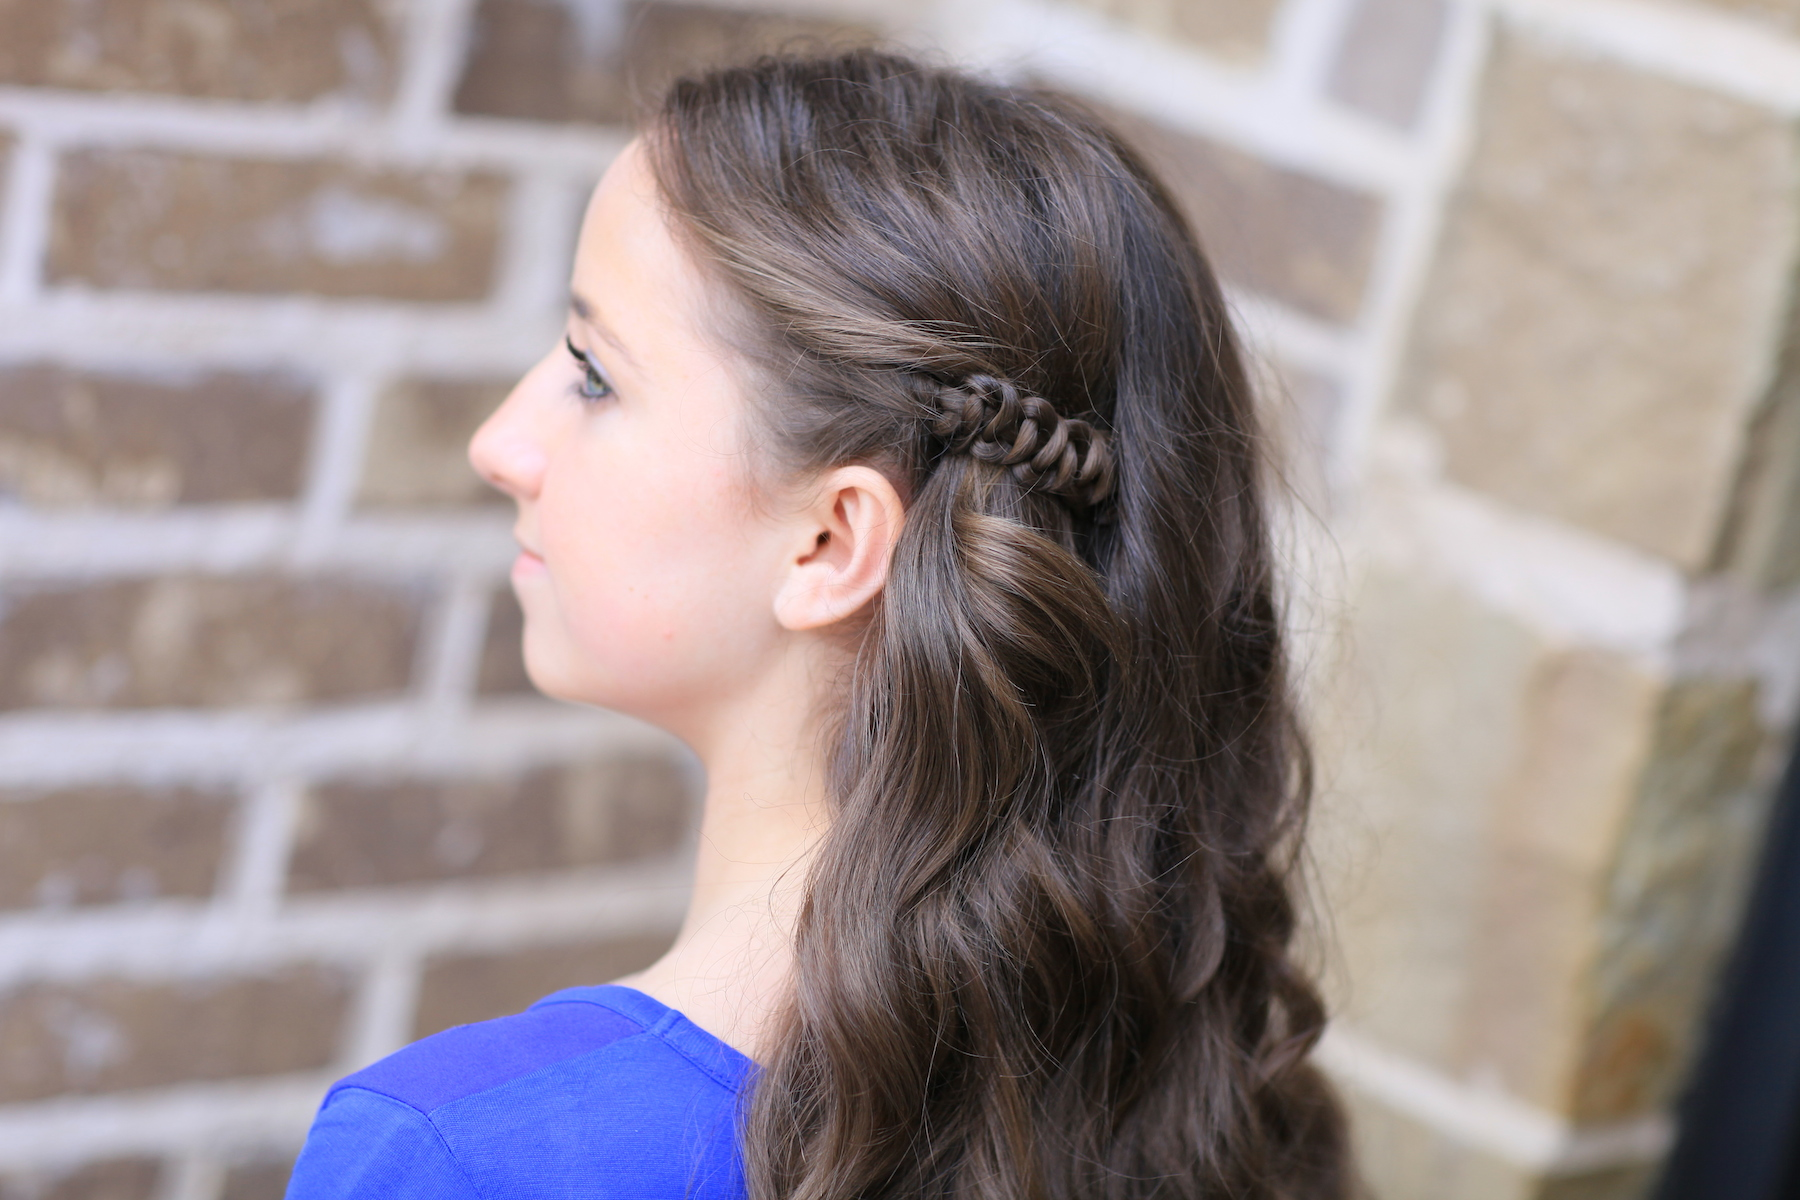 Hairstyles: How To Create A Sides-Up Slide-Up Hairstyle